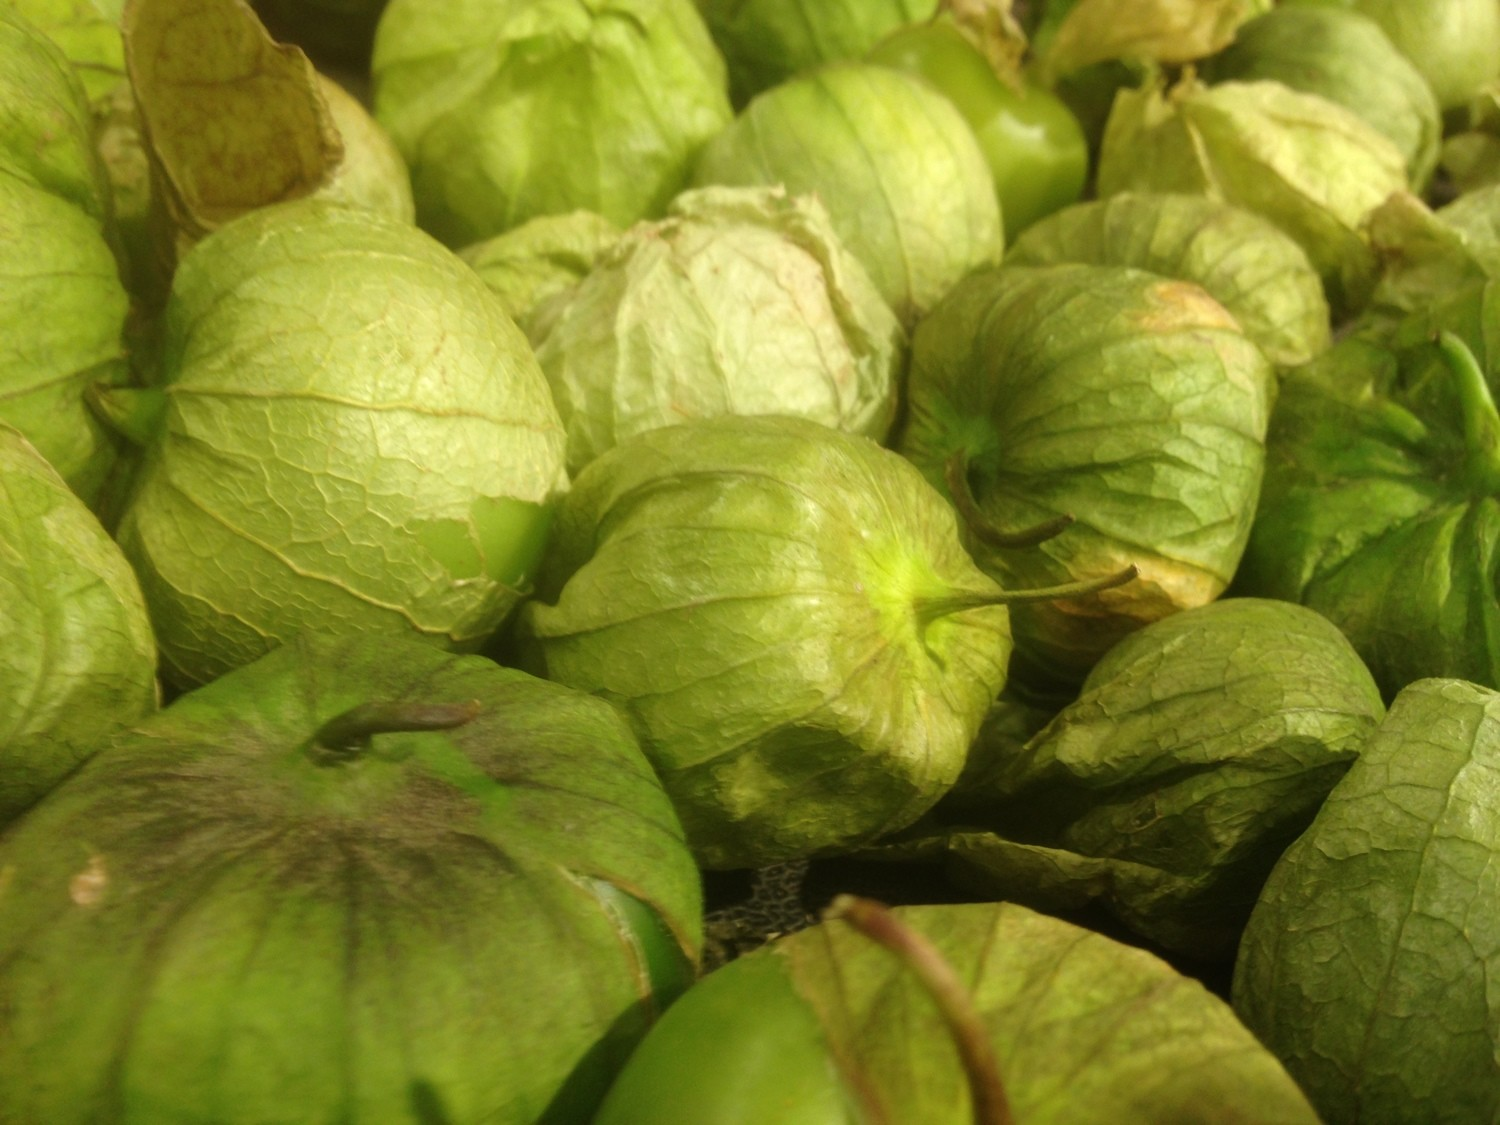 Produce, Vegetable, Tomatillos, Priced per pound